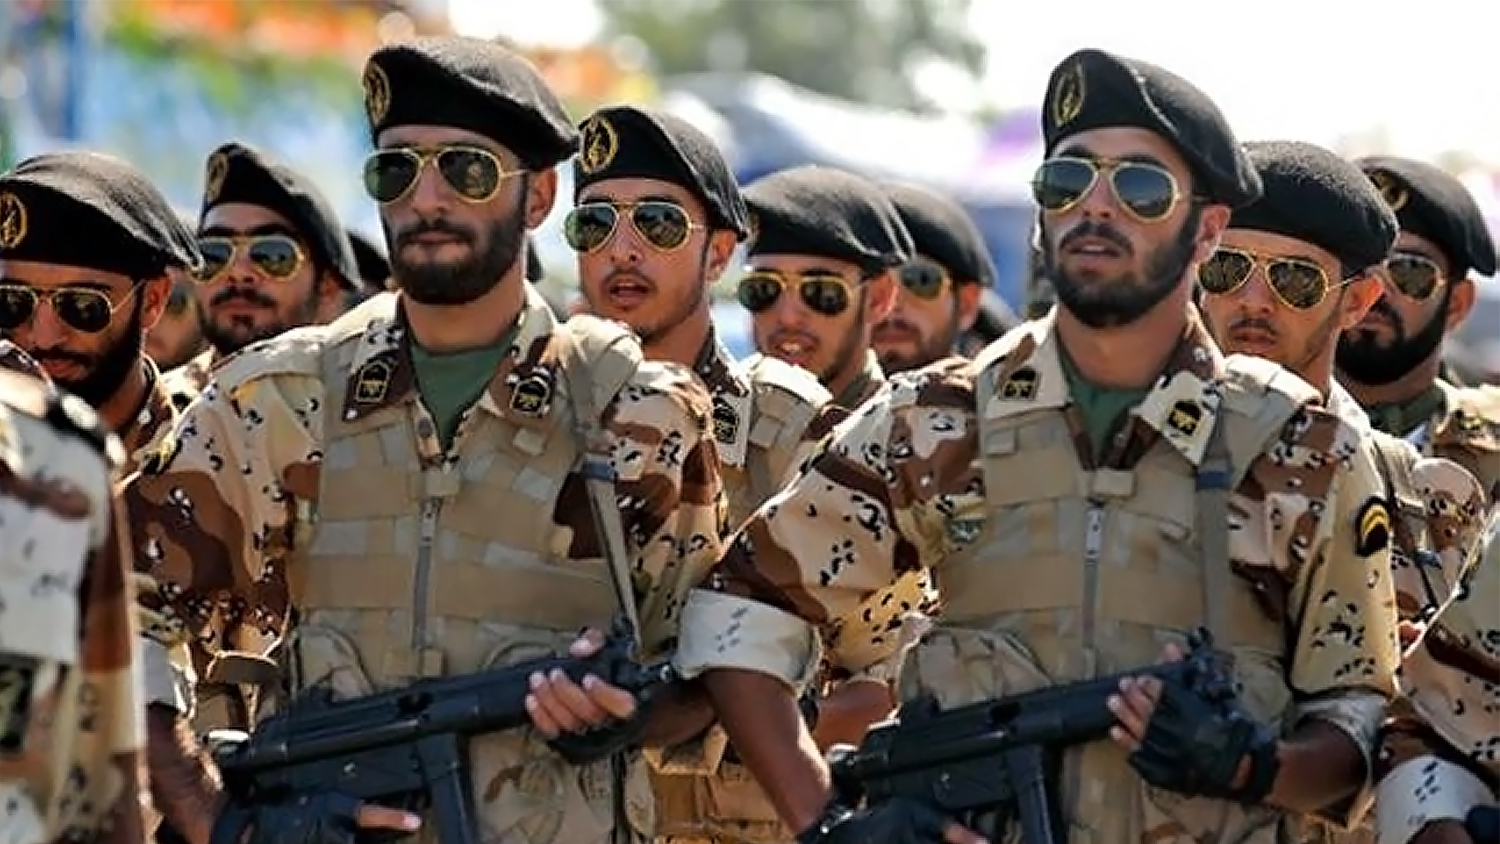 Iran's Revolutionary Guards To Establish Tribal Force In Syria's Deir Ezzor